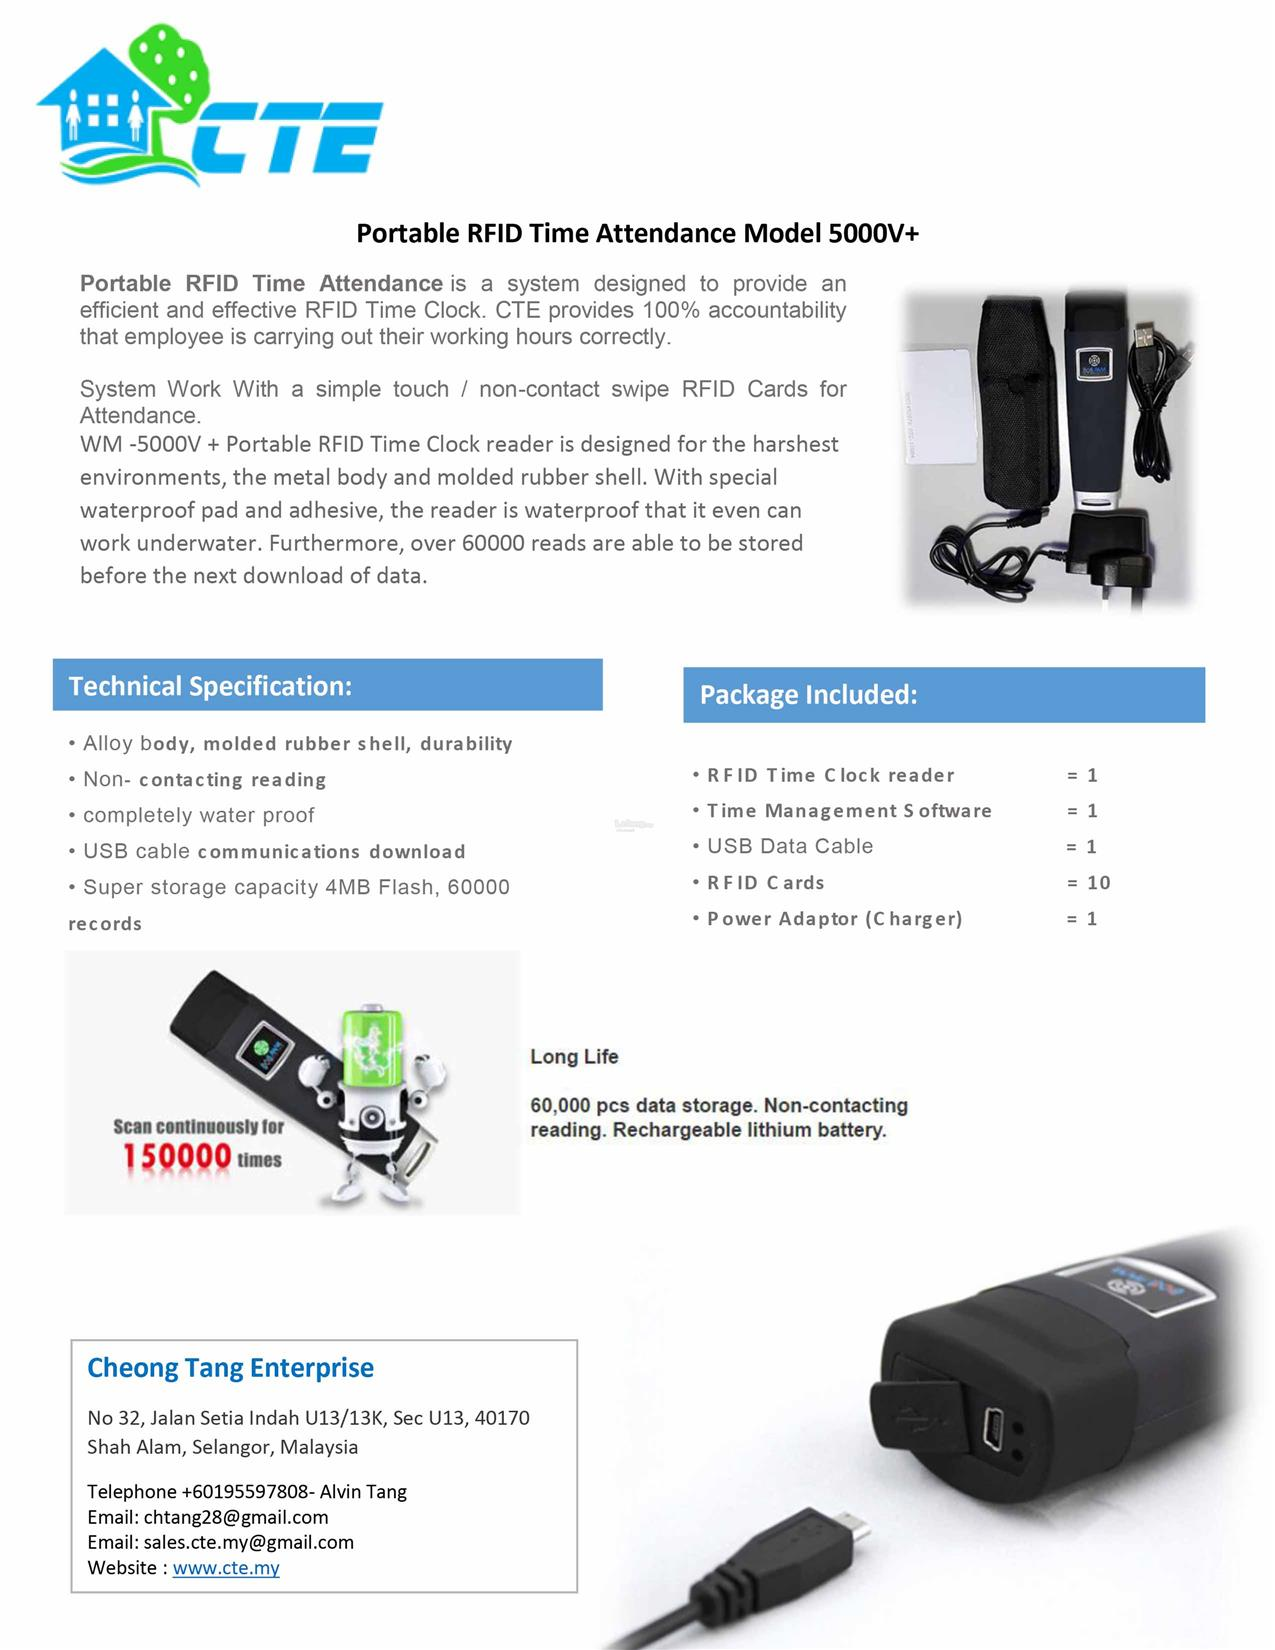 Portable ID Card Time Attendance Device 5000V+ s